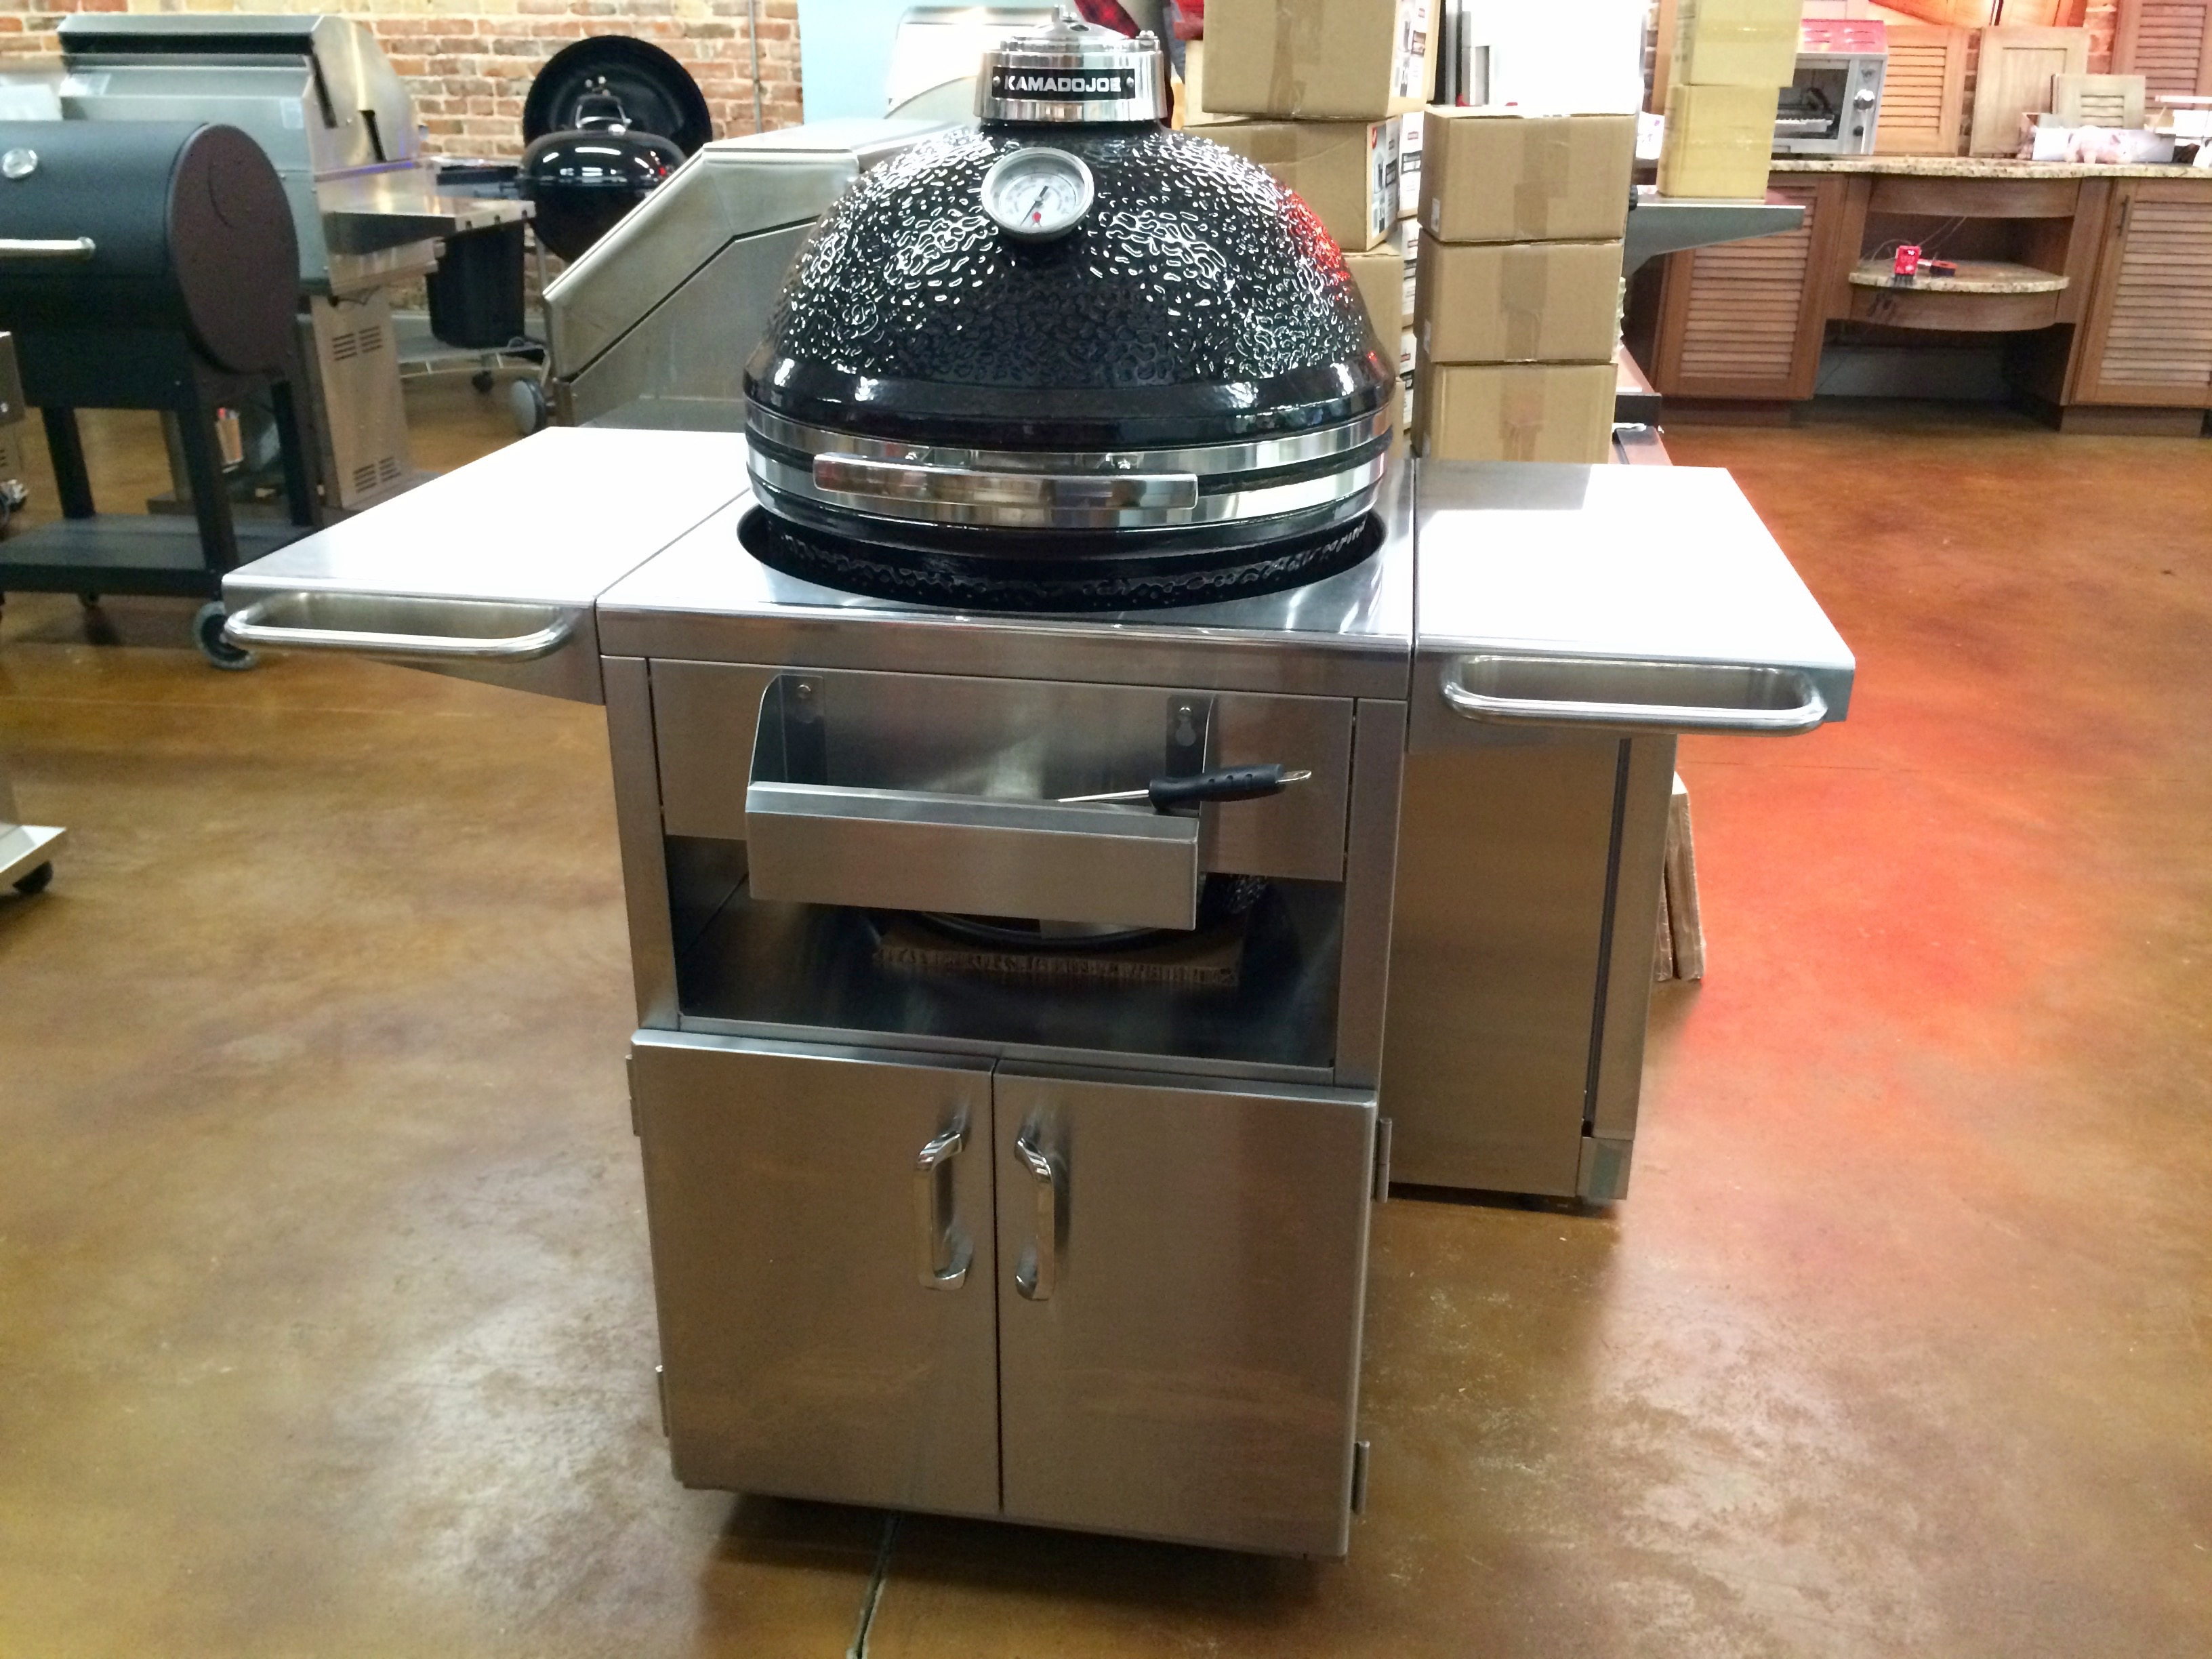 Fireside S Favorite Things Kamado Joe Grill Deal